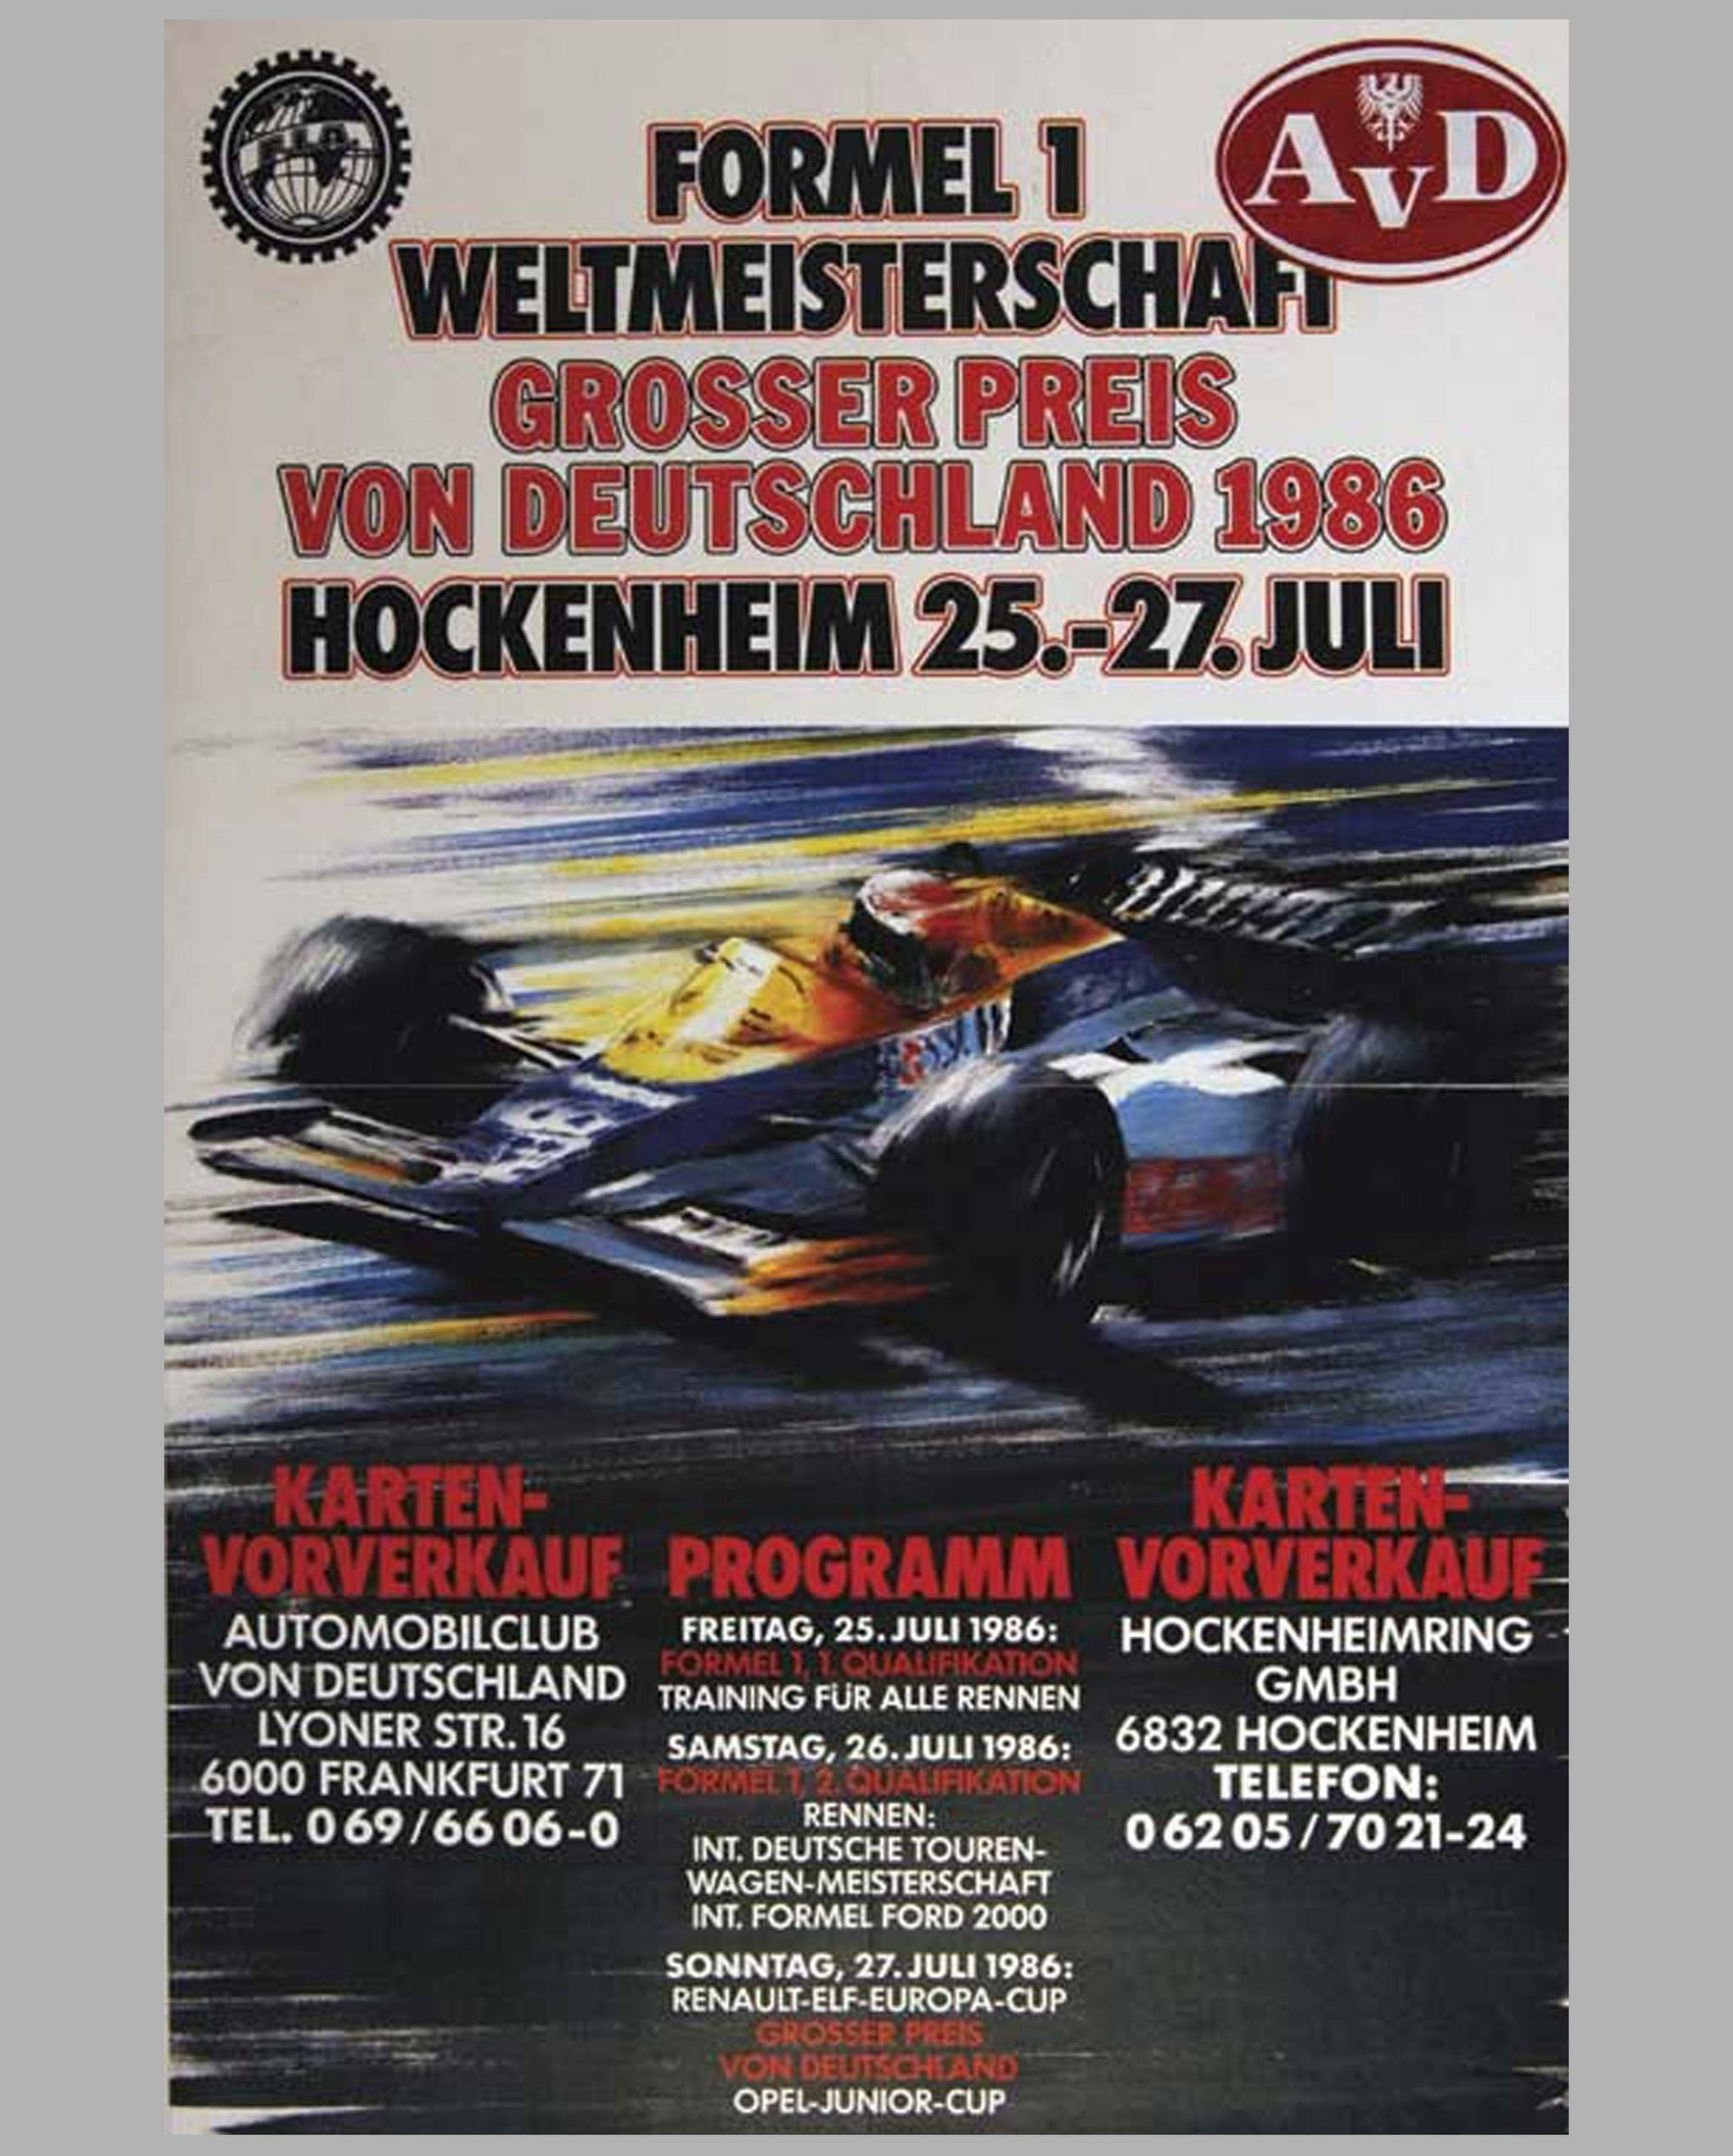 GP Germany - Hockenheim 1986 original official event poster